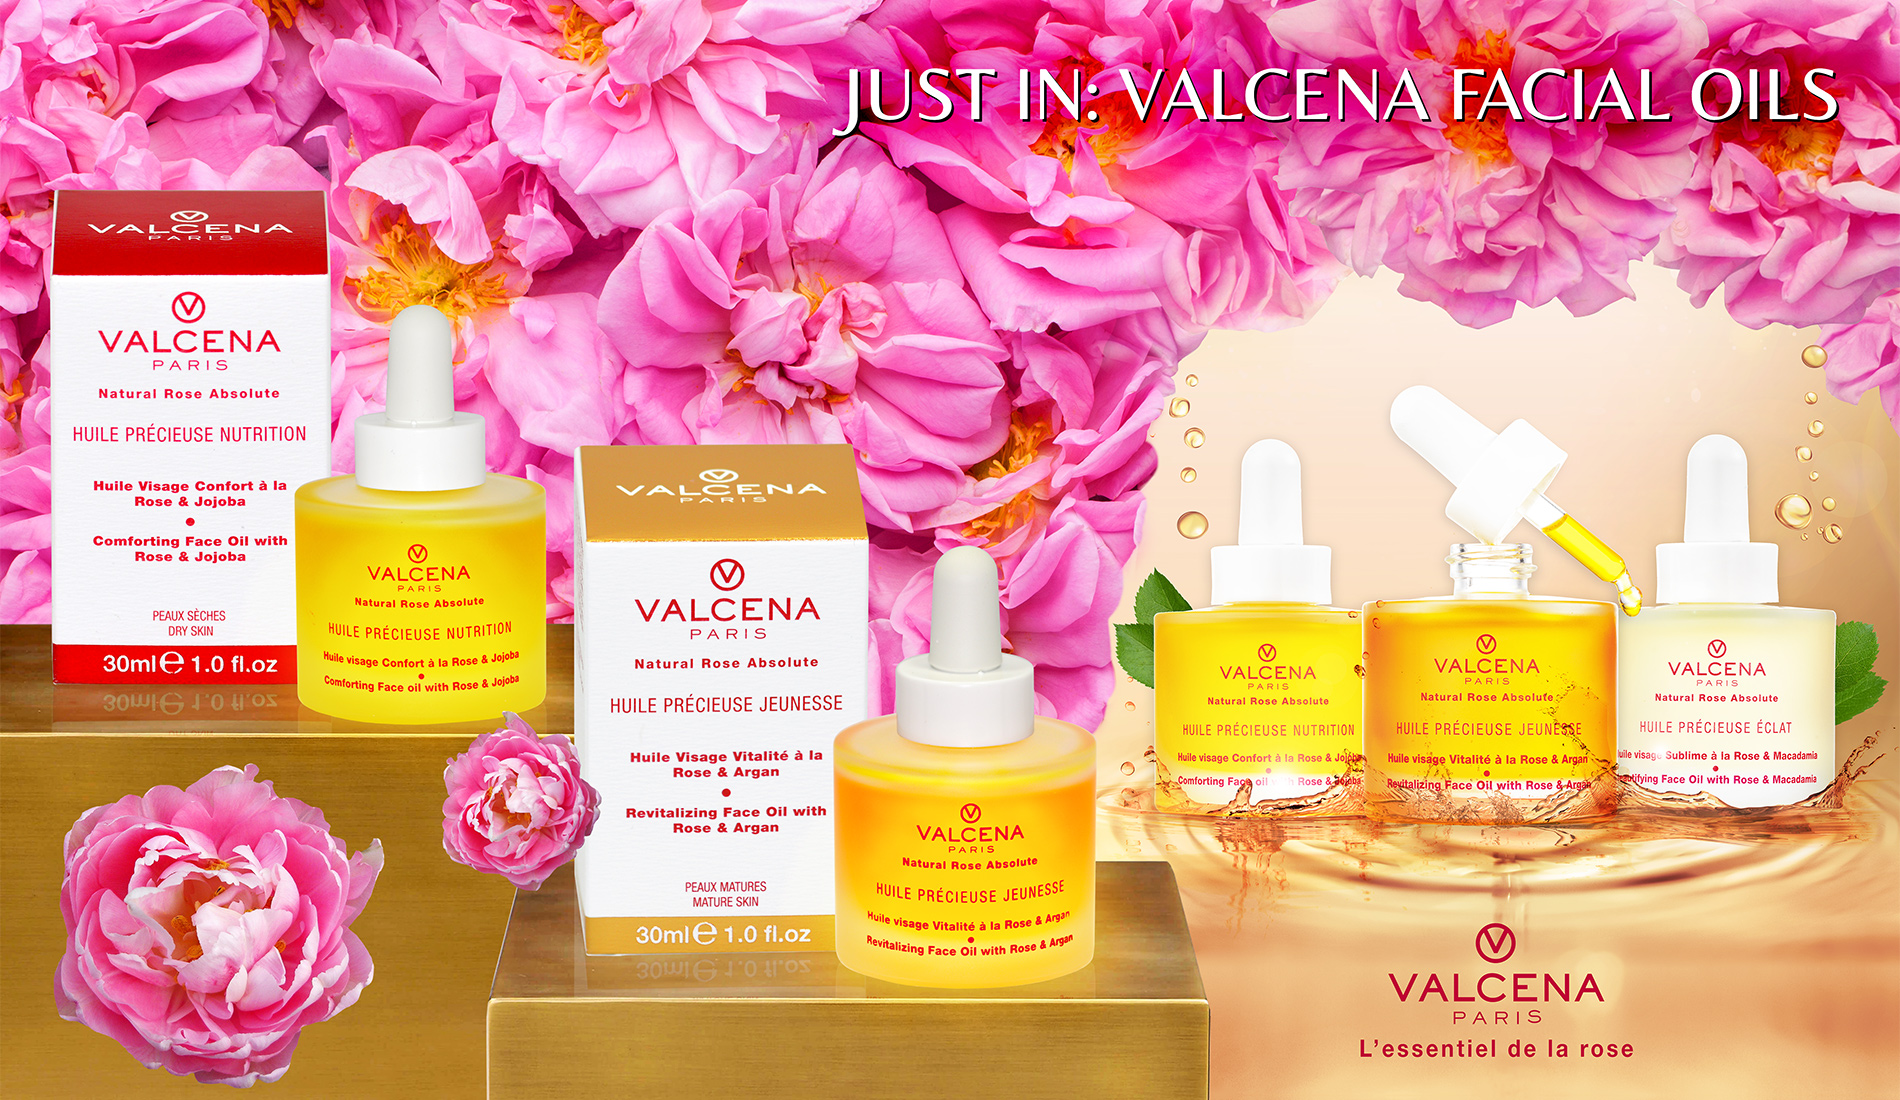 Valcena Facial Oils